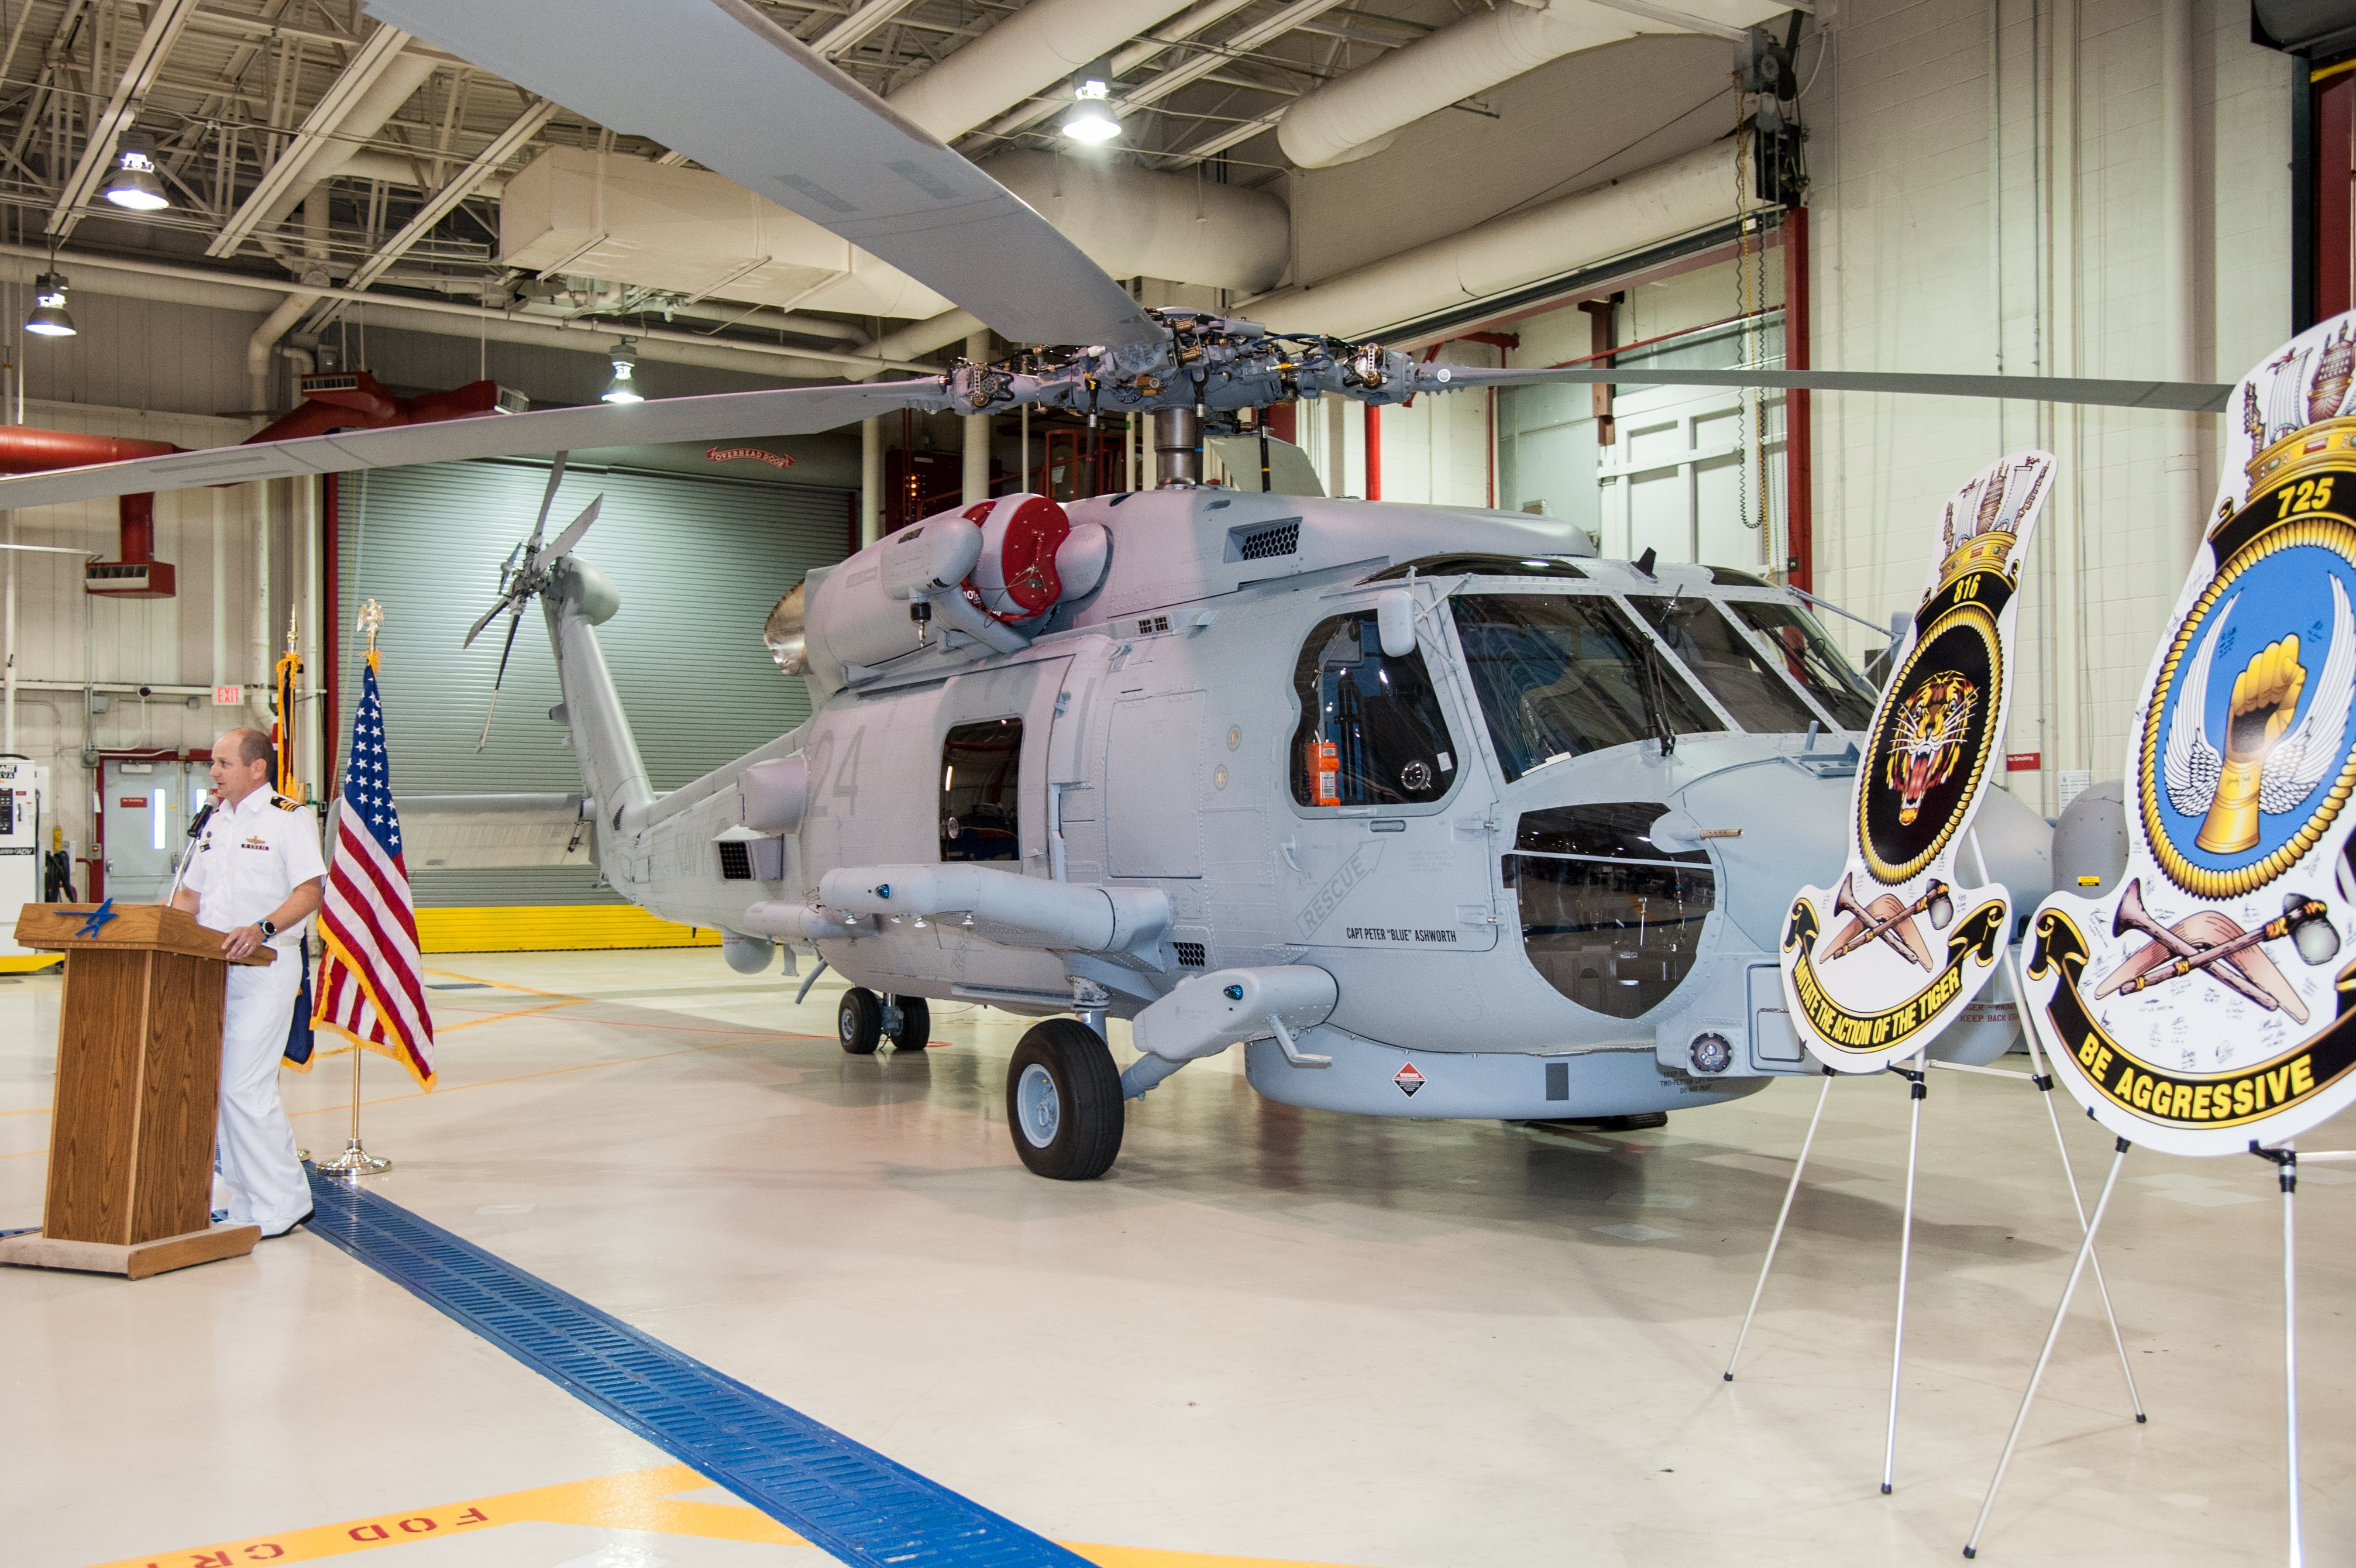 MH-60R helicopters